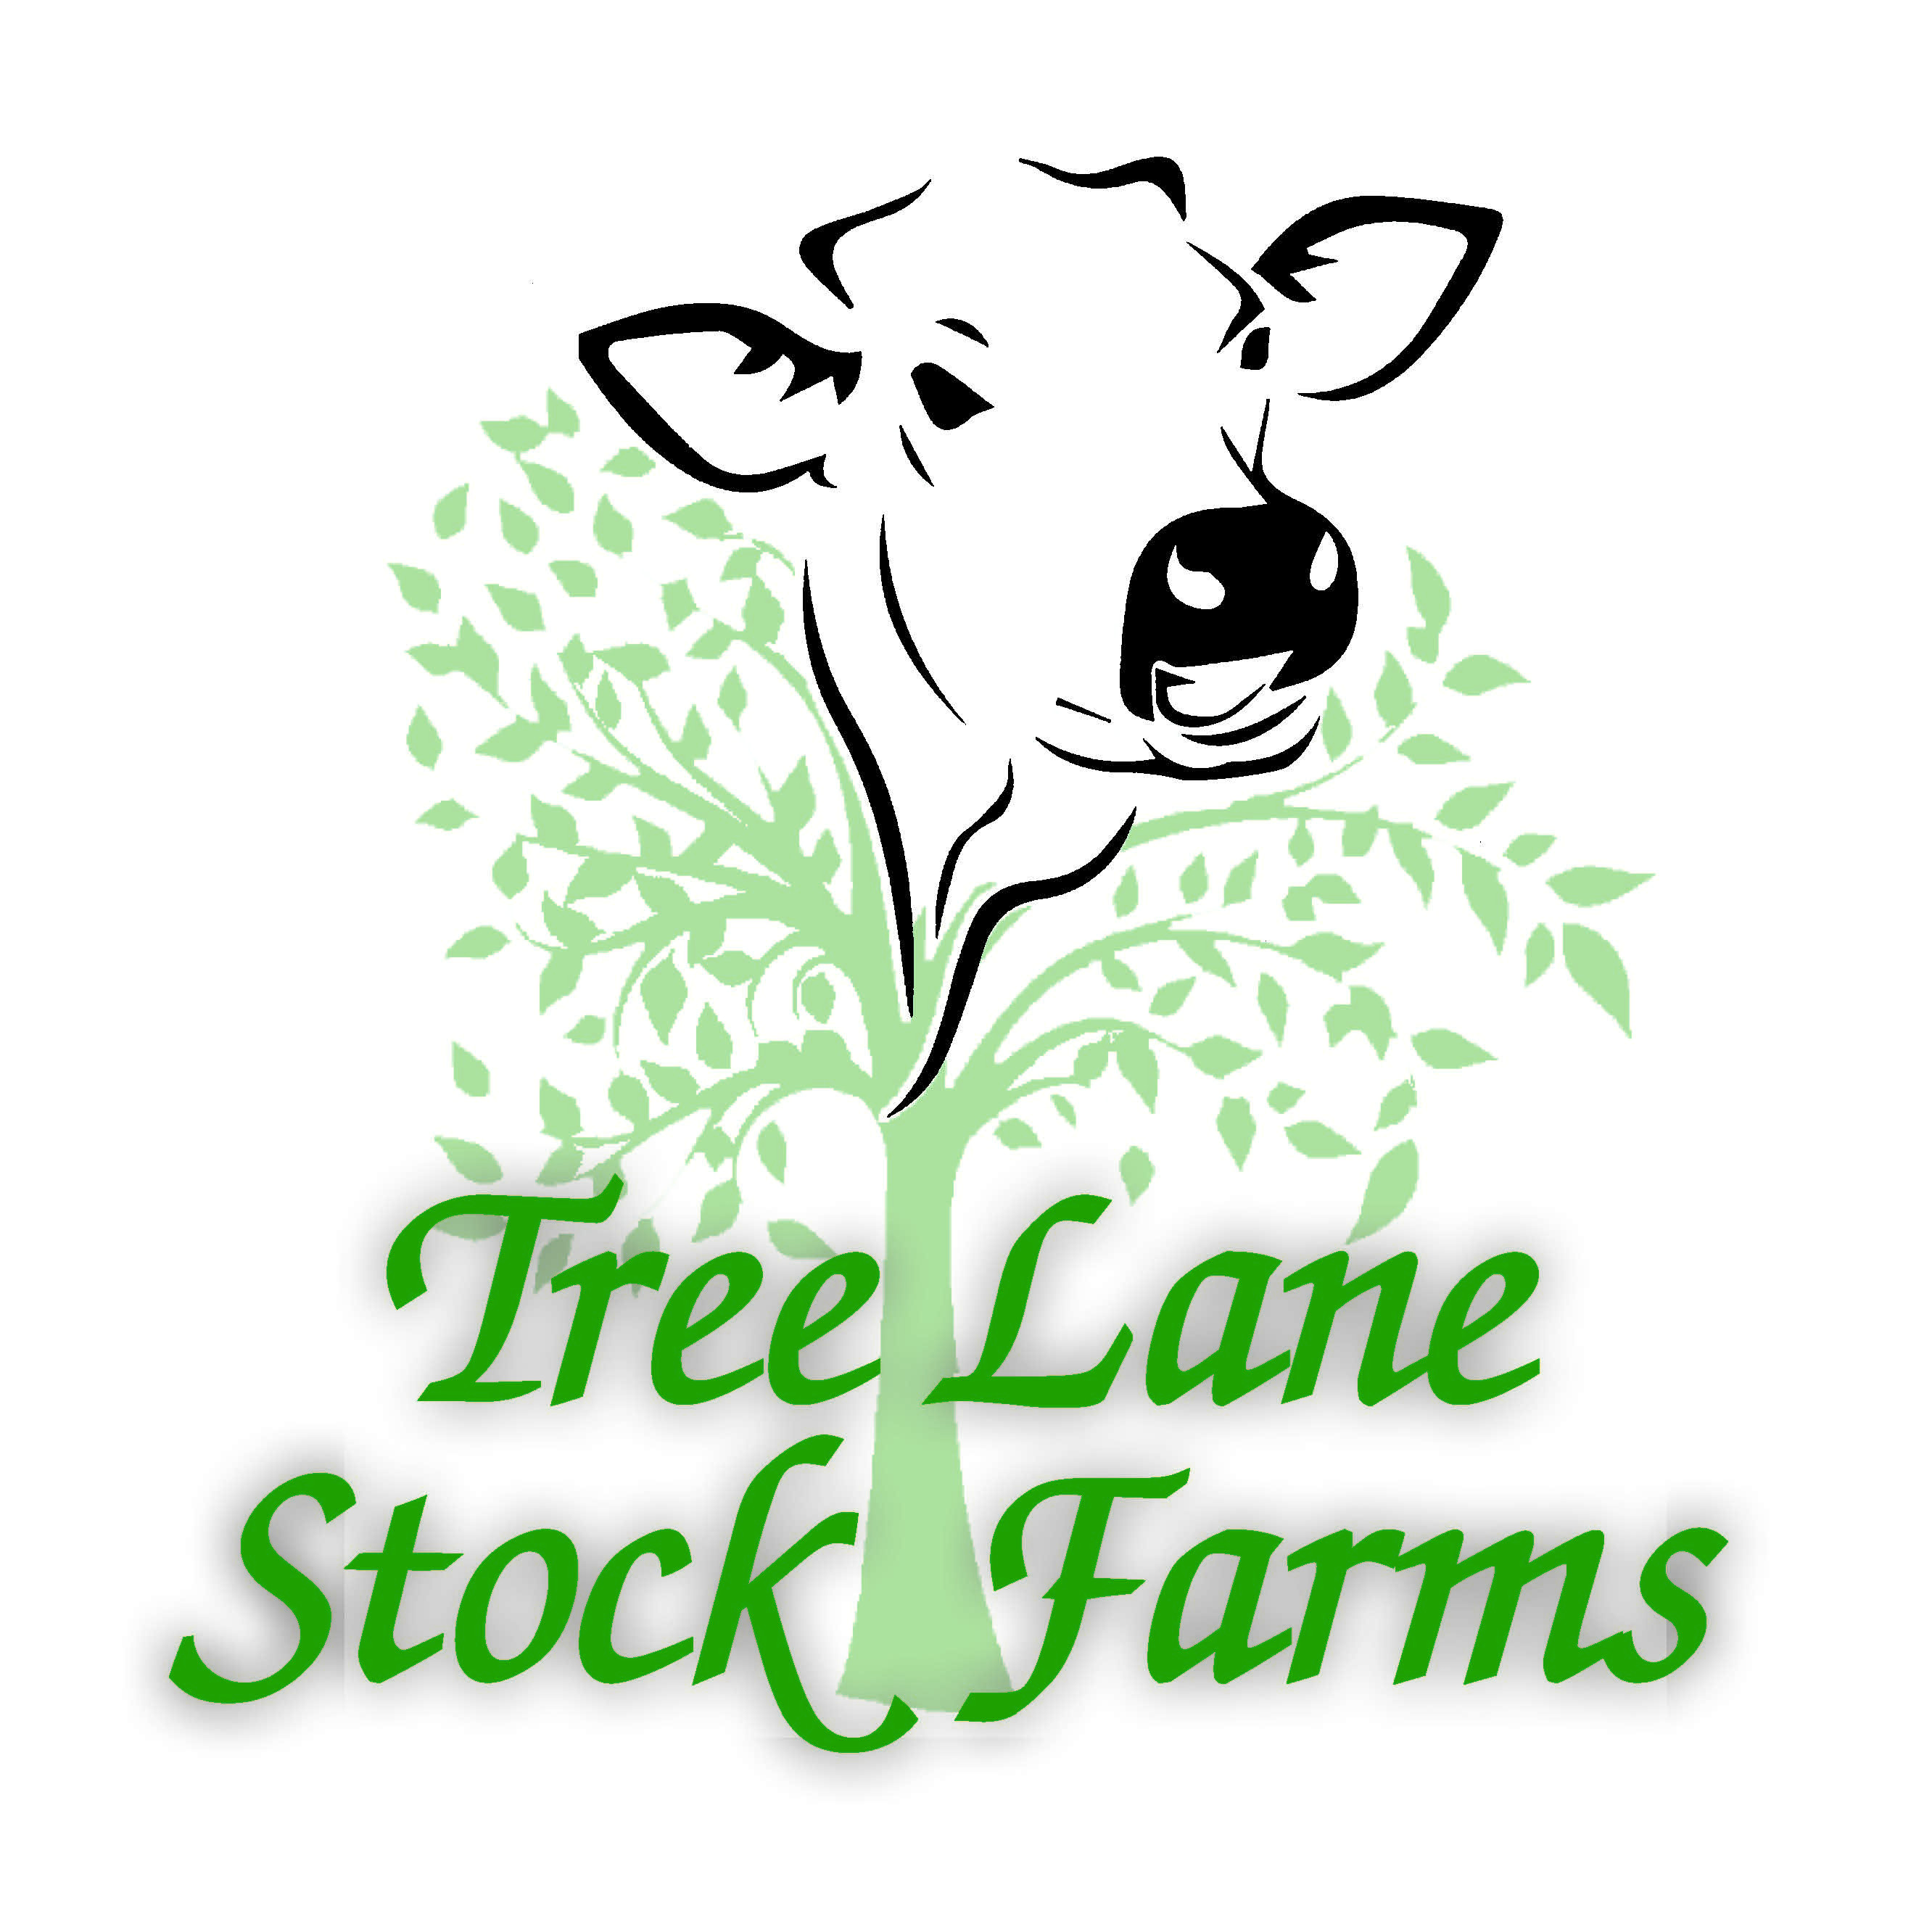 Tree Lane Stock Farms Logo